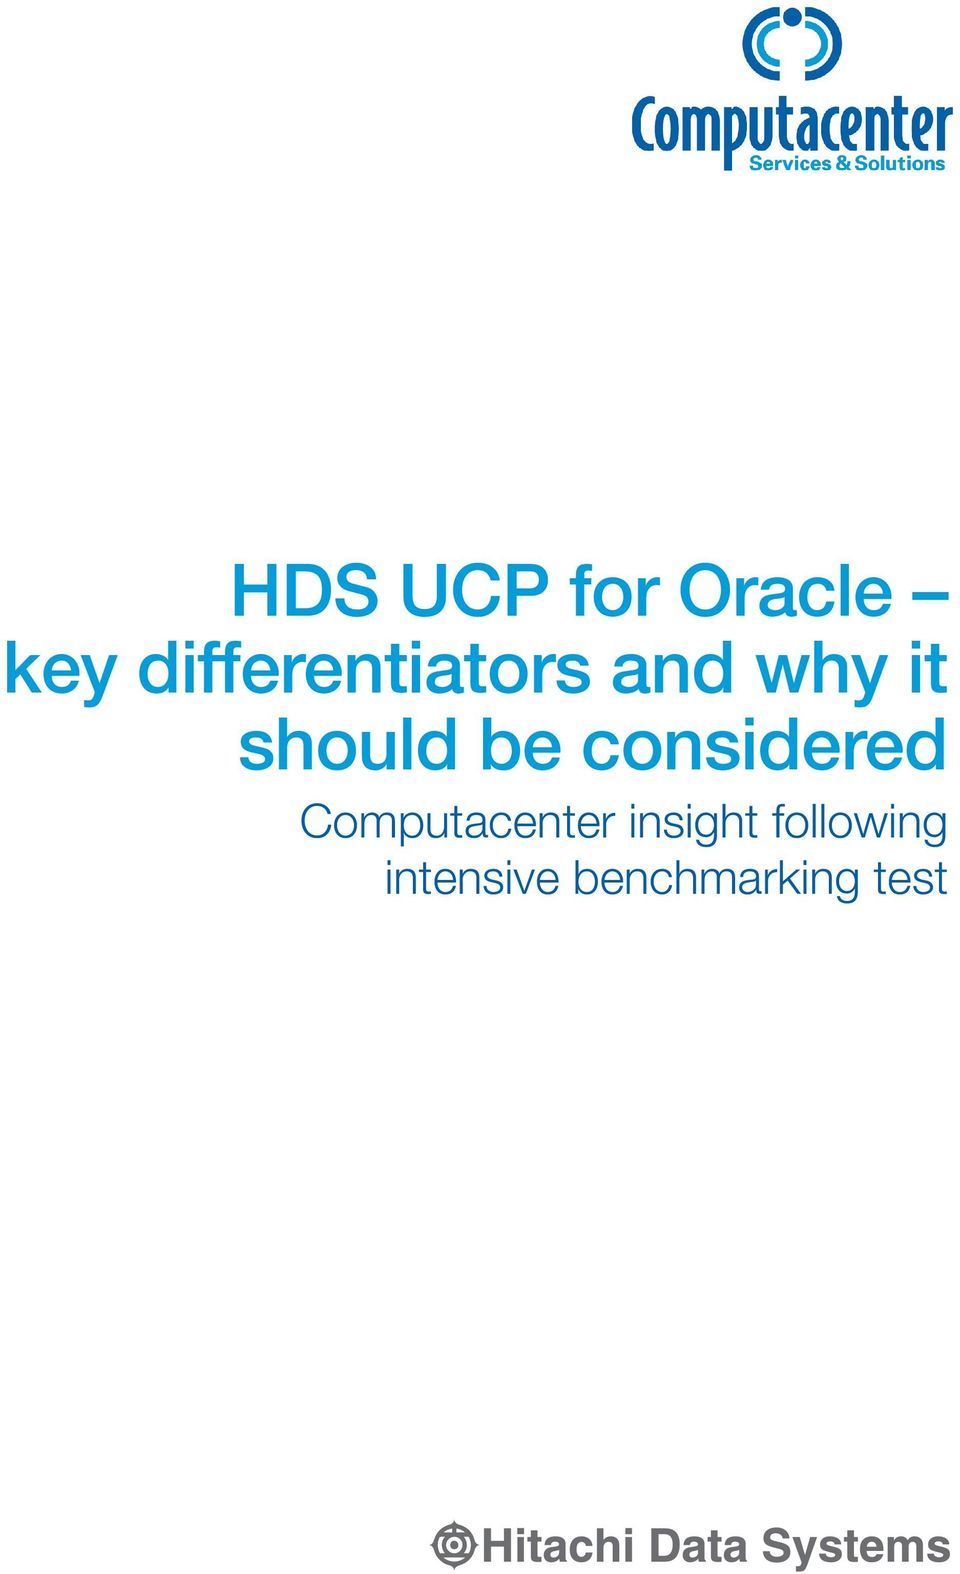 HDS UCP for Oracle key differentiators and why it should be